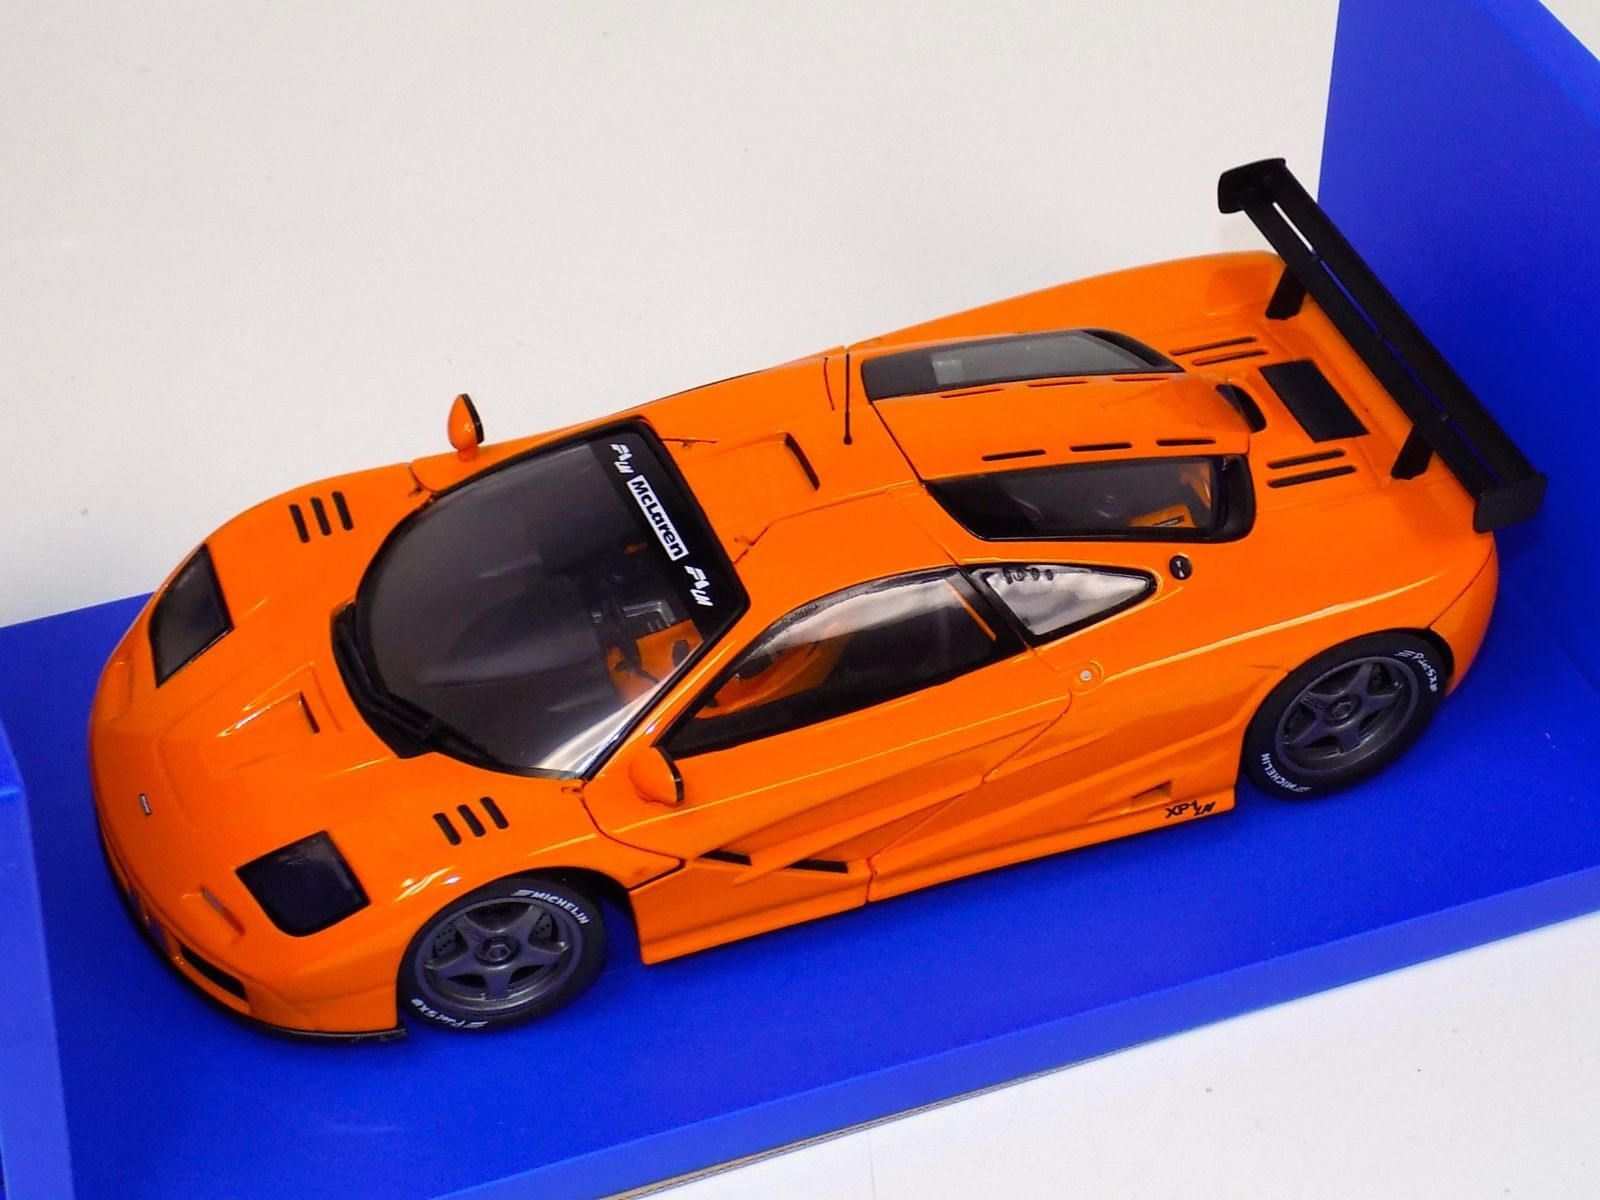 Chasingtoycars Etsy Diecast Model Toy Cars Replica Chasingtoycars